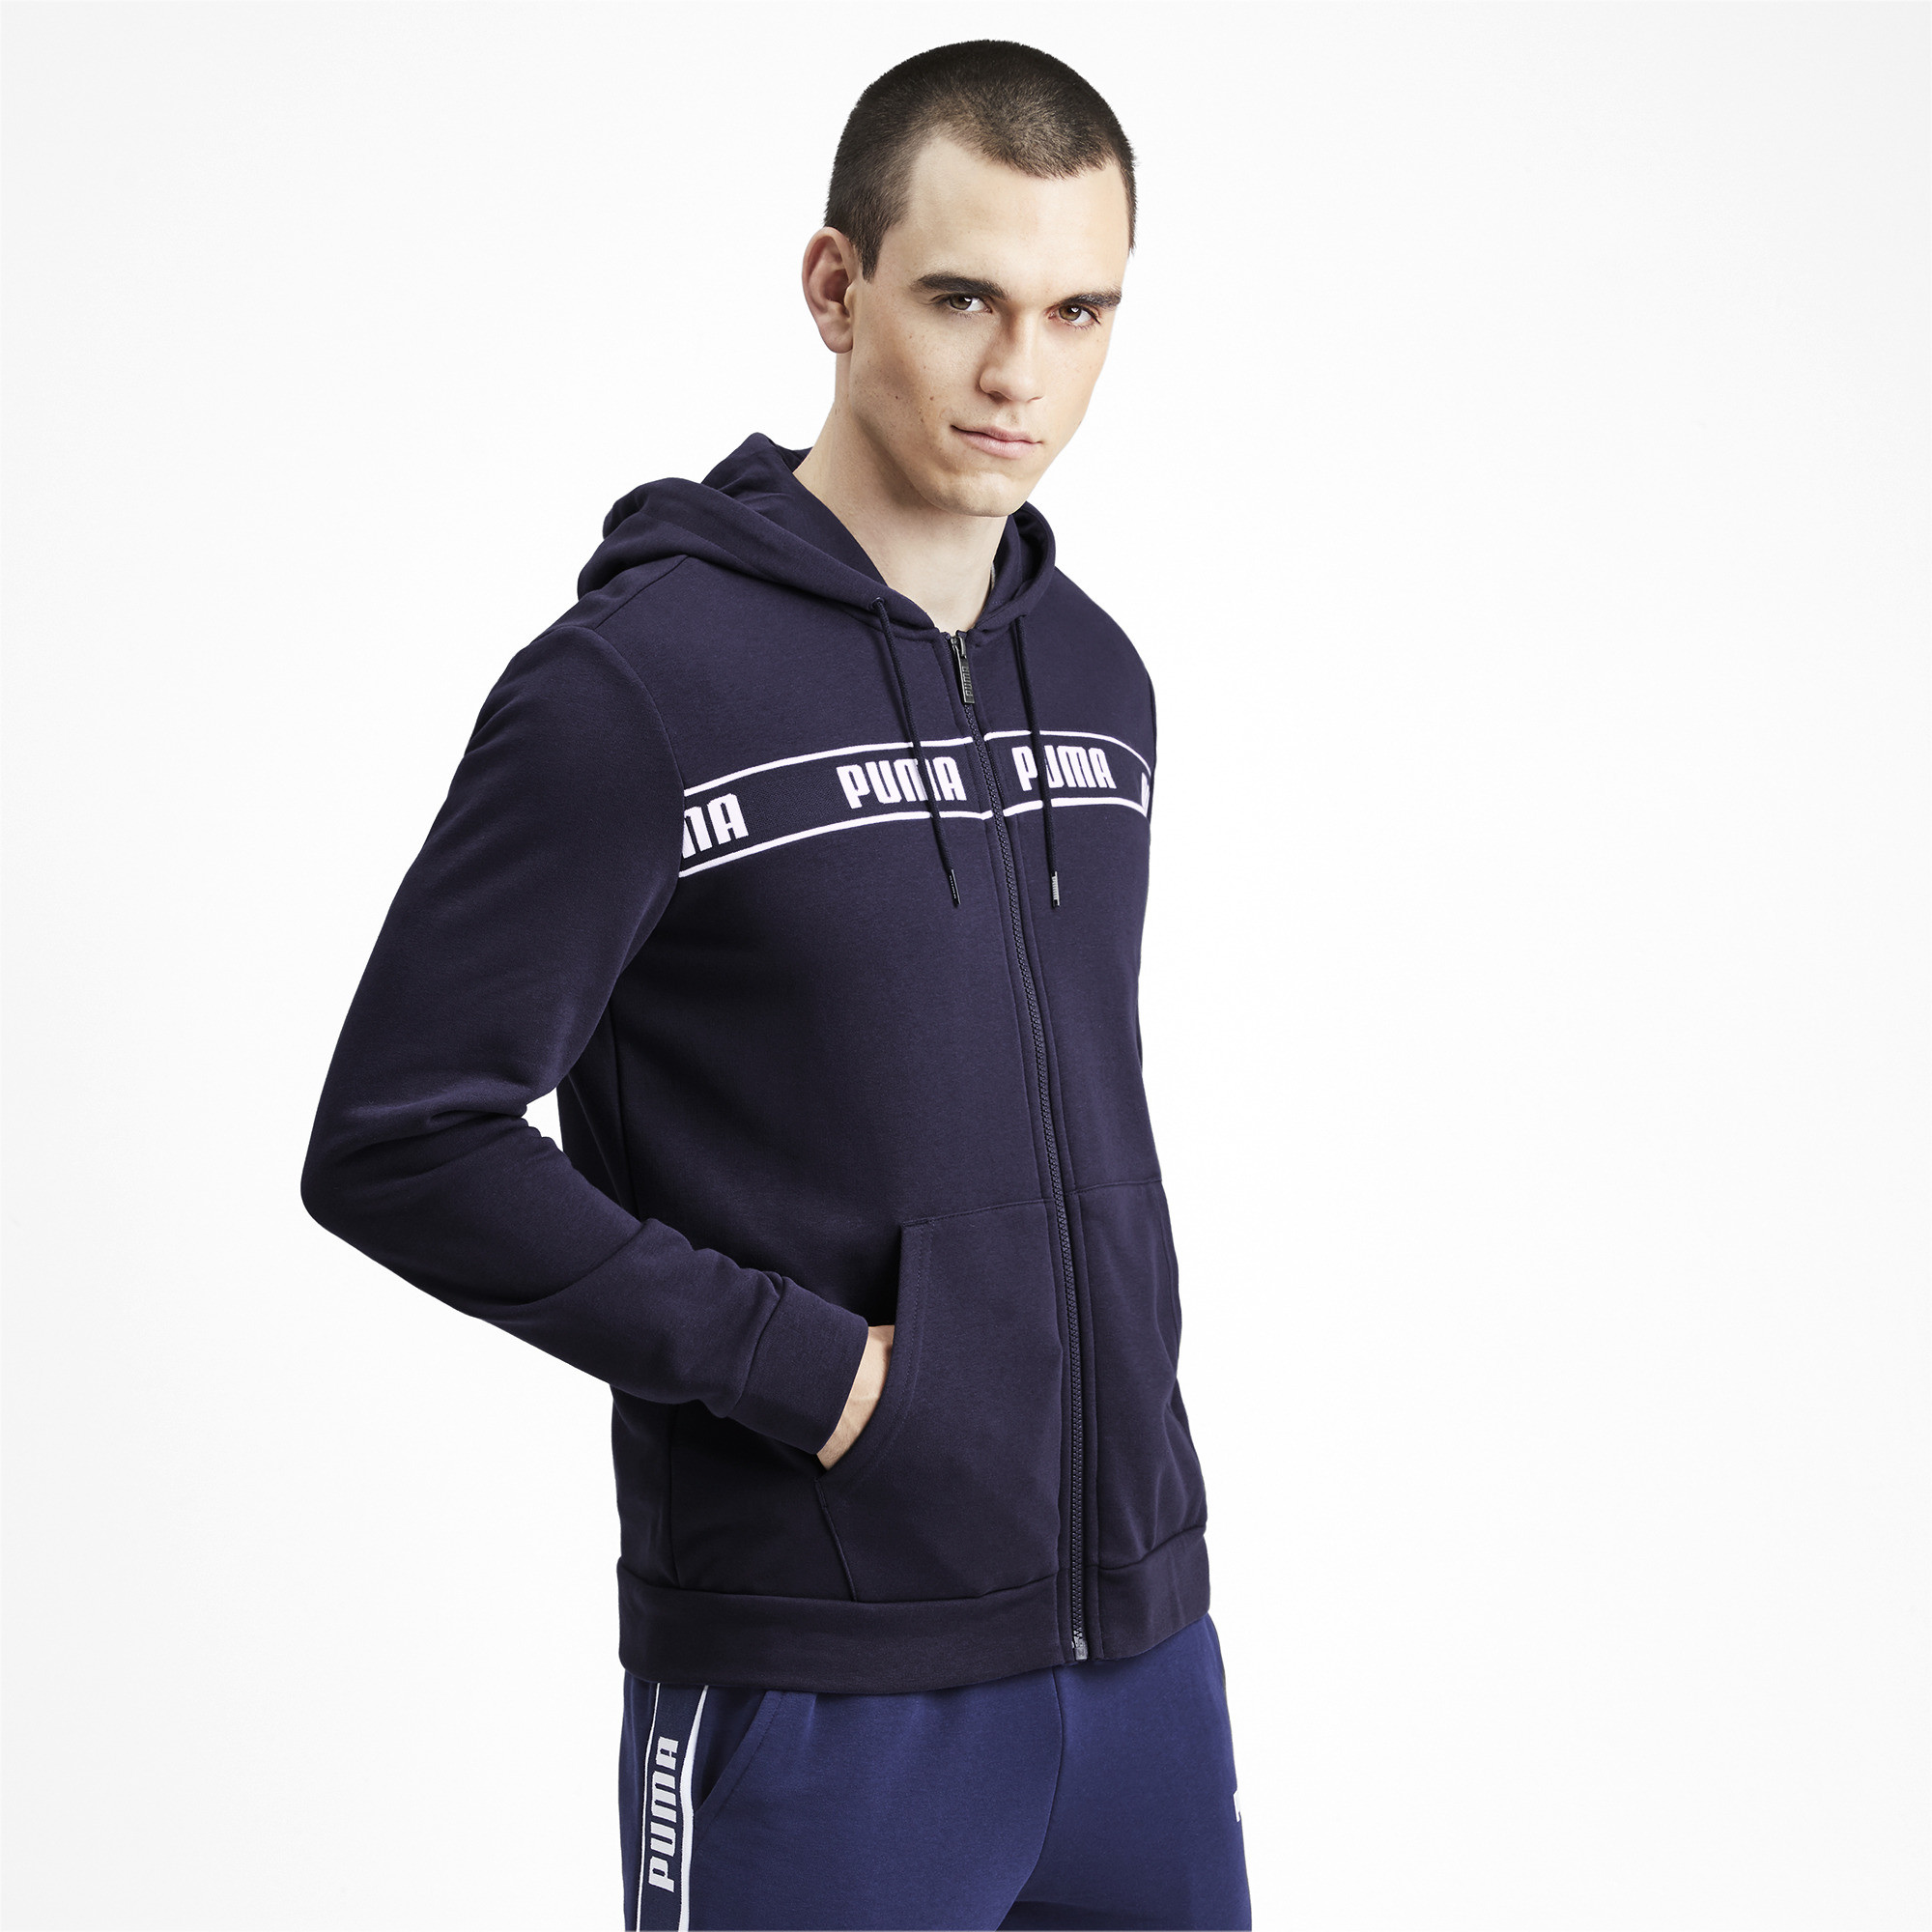 PUMA-Amplified-Men-039-s-Hooded-Jacket-Men-Sweat-Basics thumbnail 4